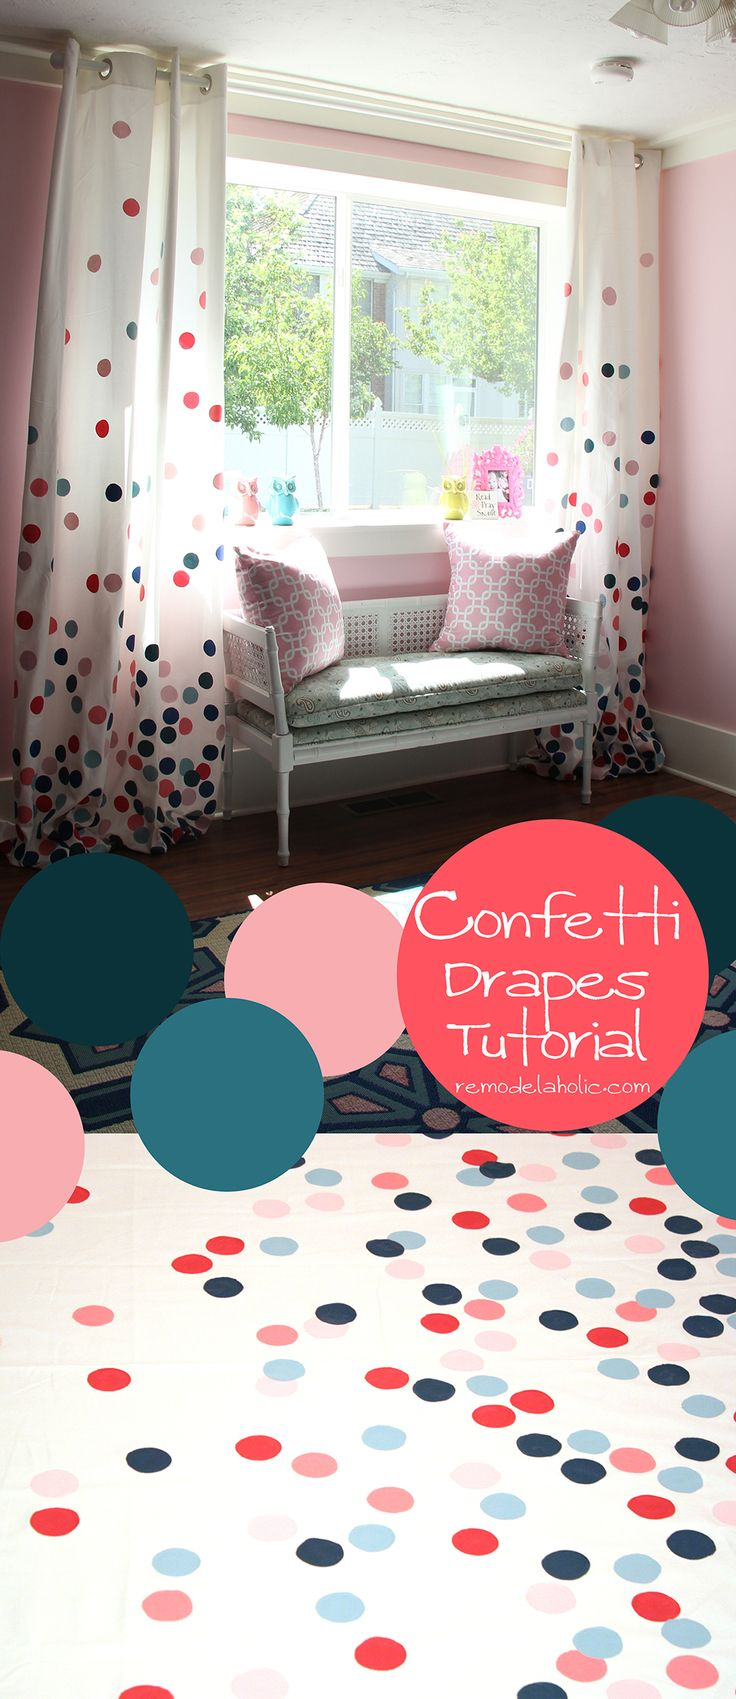 Pink and white polka dot curtains - Confetti Drapes Tutorial